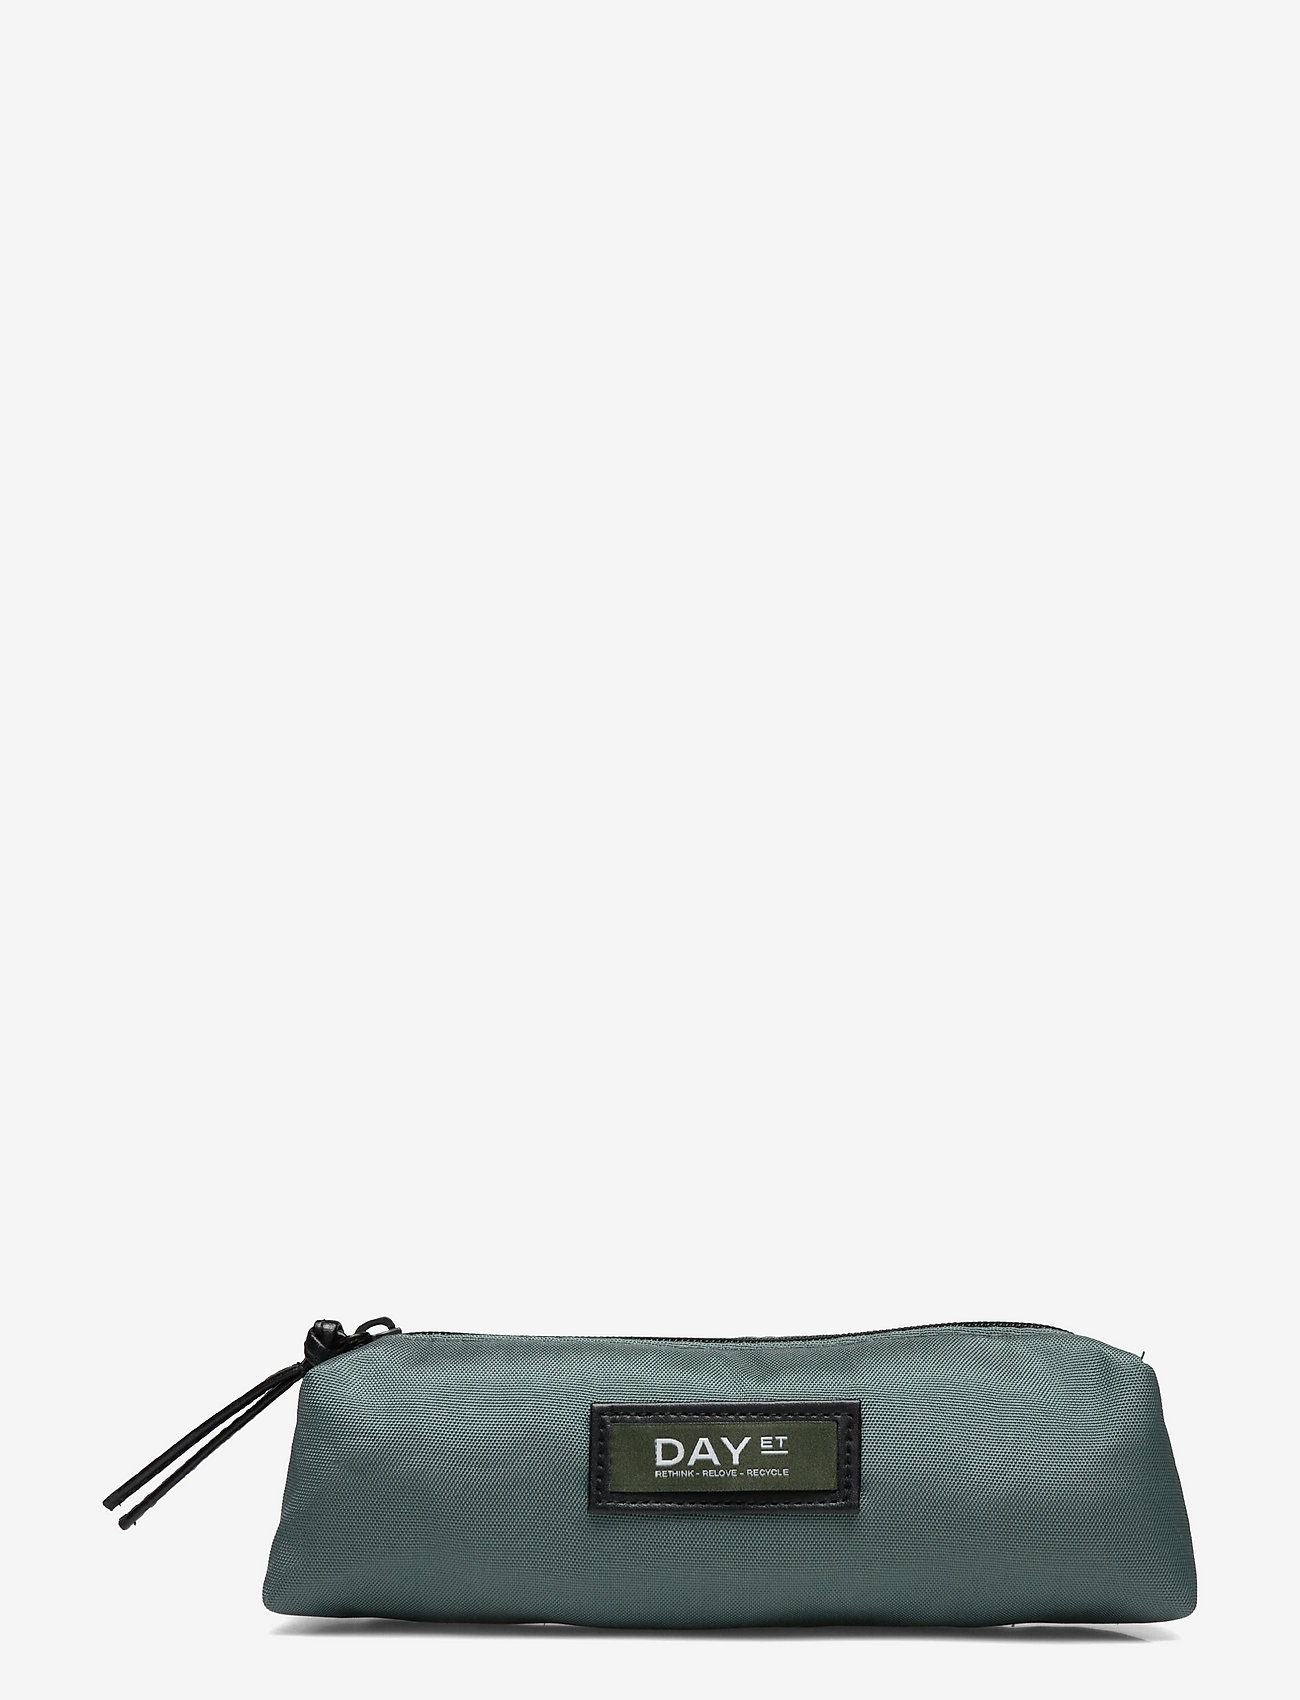 DAY et - Day Gweneth RE-S Pencil - accessories - silver pine - 0